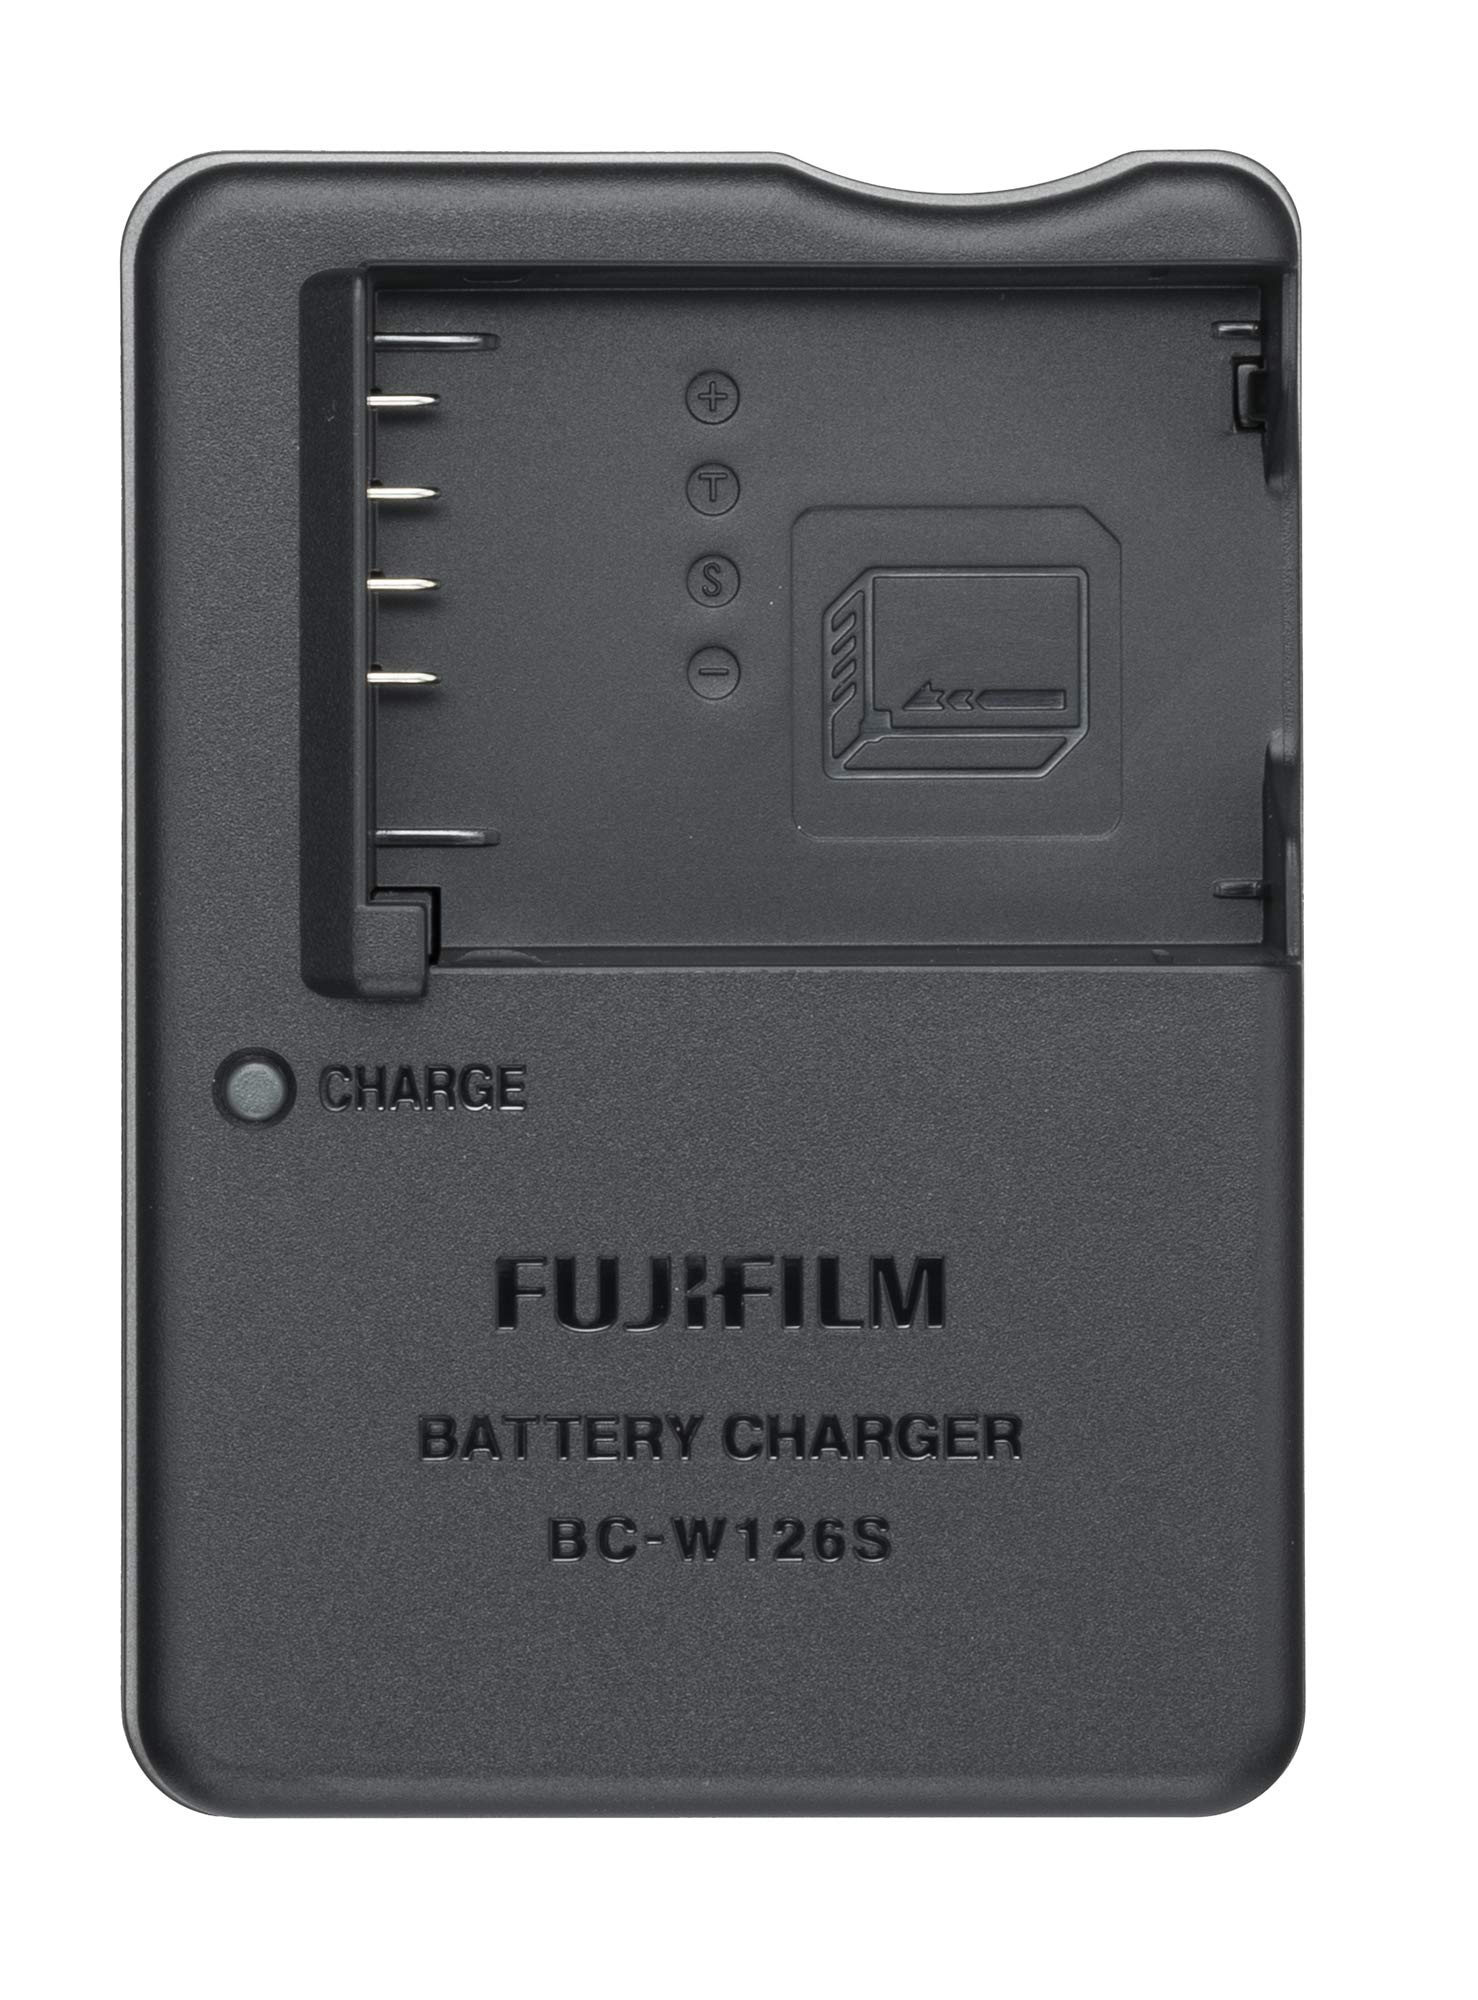 Fujifilm Battery Charger BC-W126S  for NP-W126S Li-ion Battery